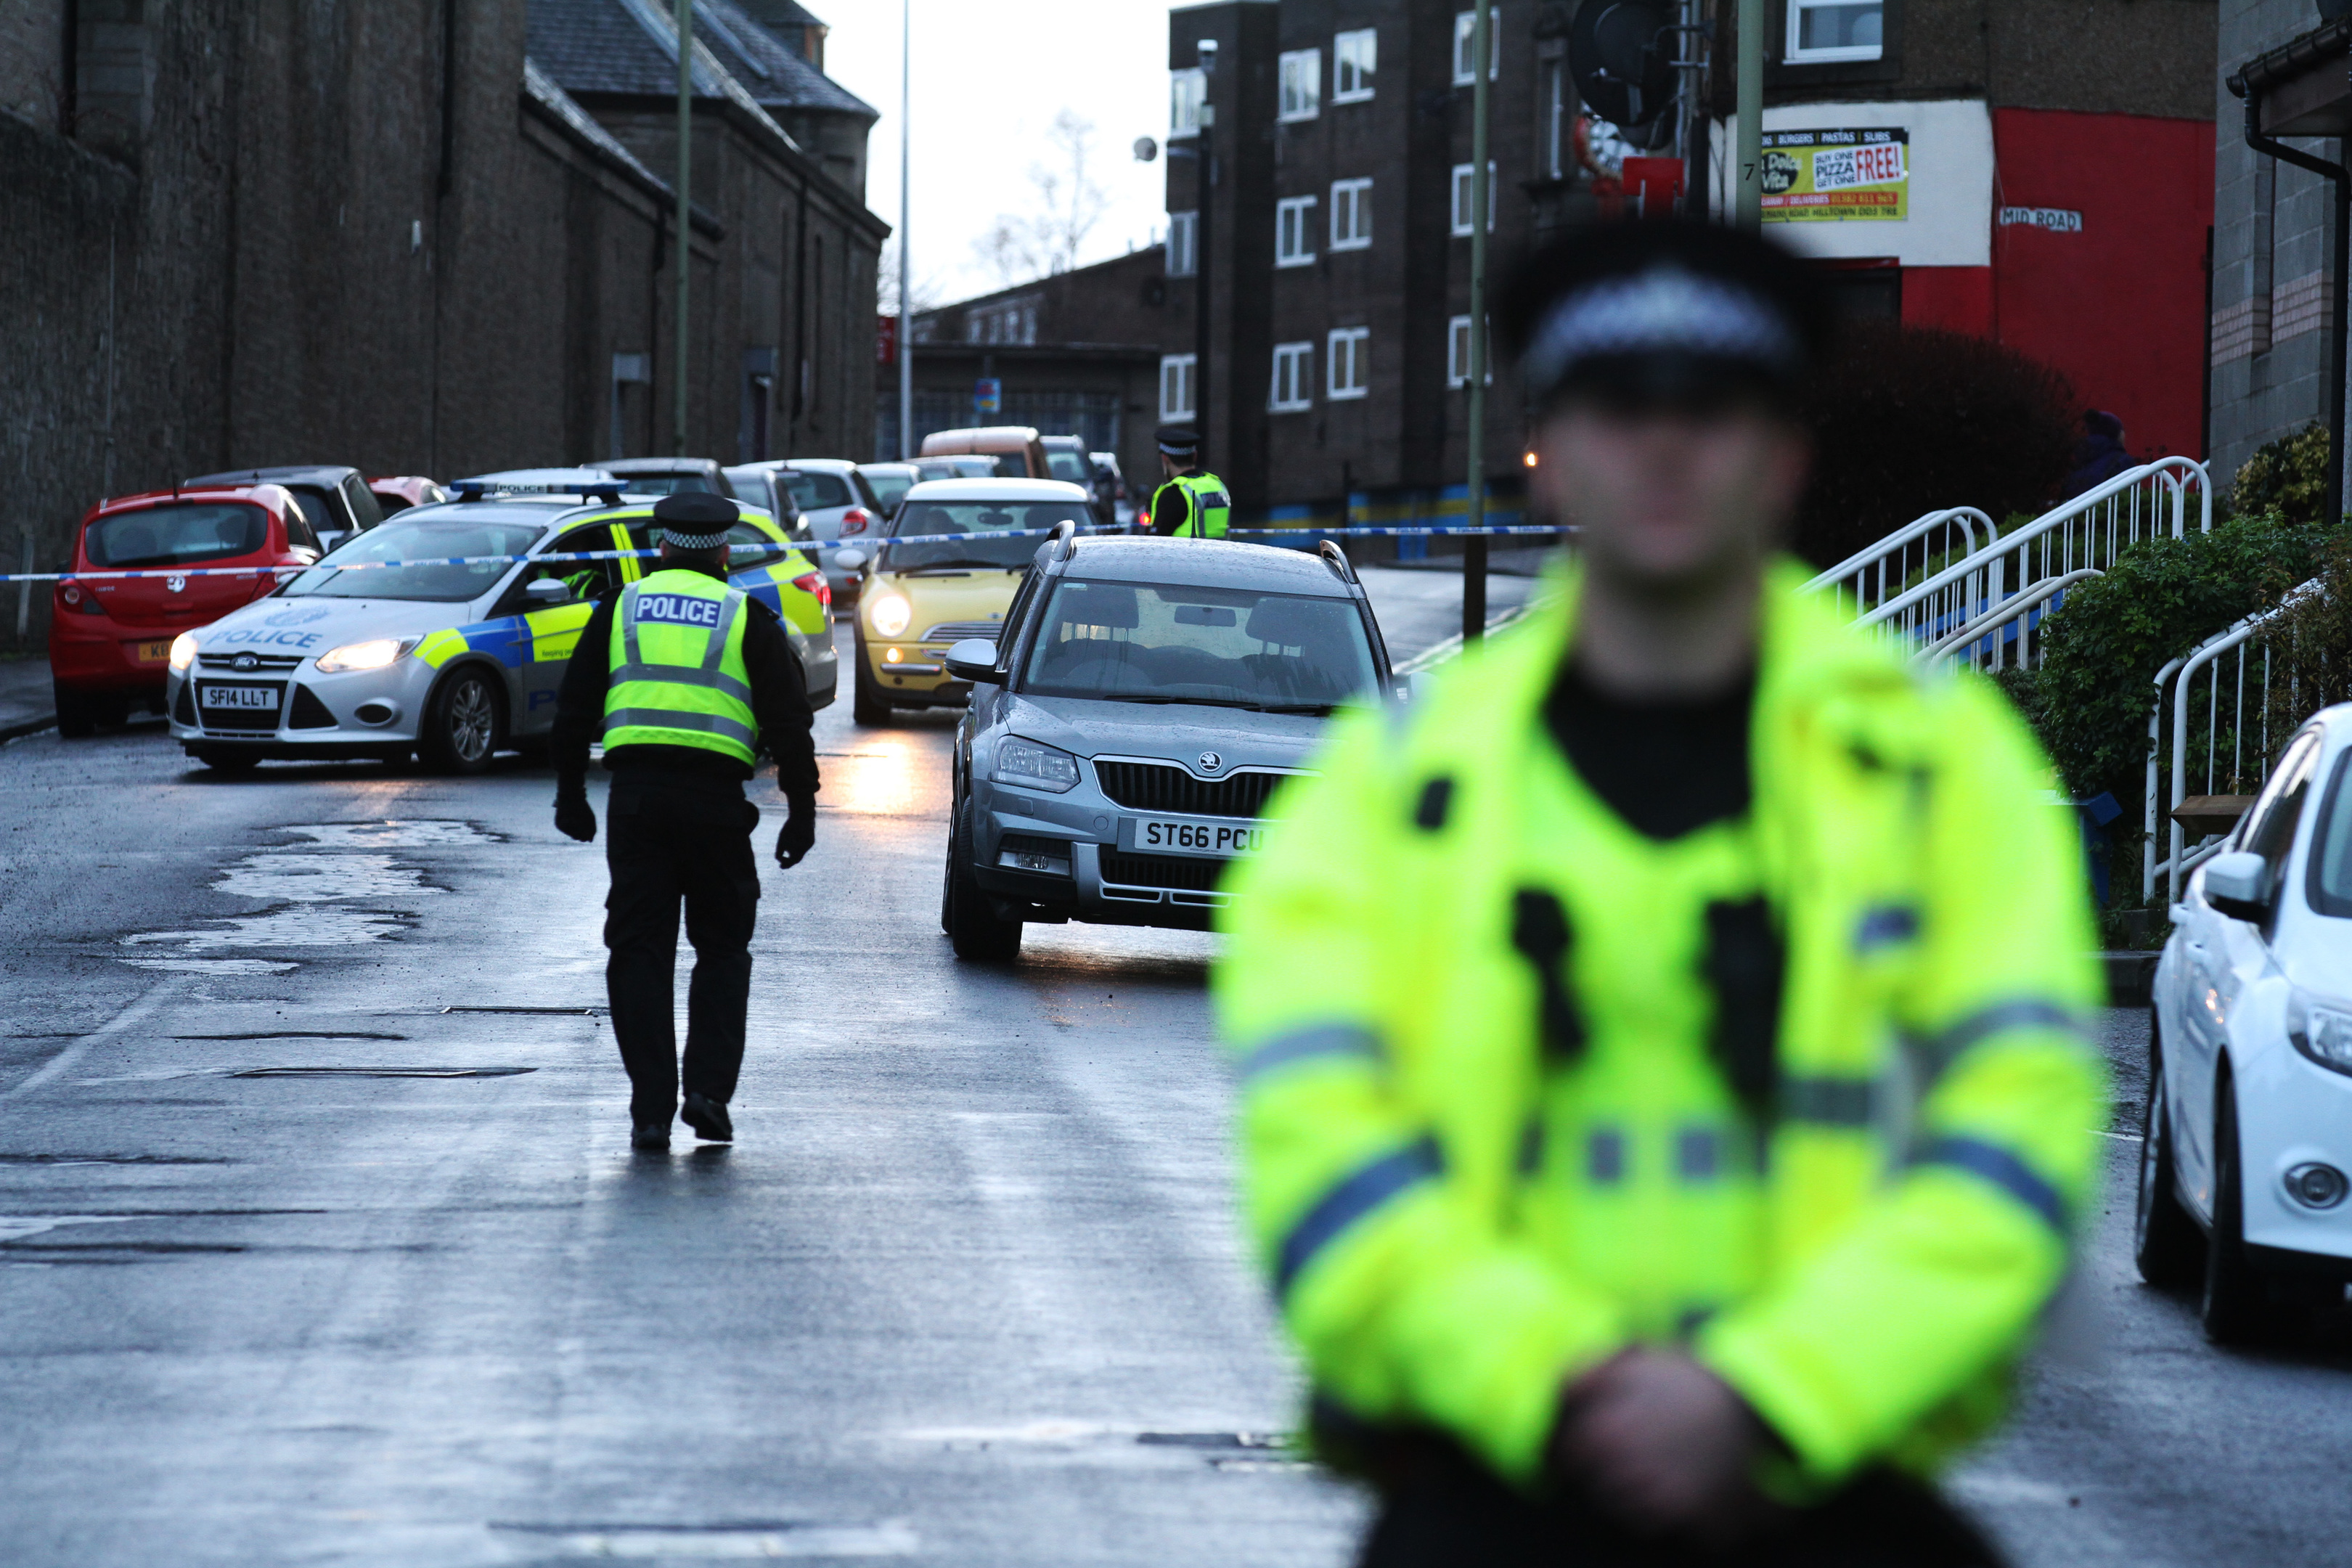 Police at the cordon on Mains Road, where John Ogston was found on New Year's Day.